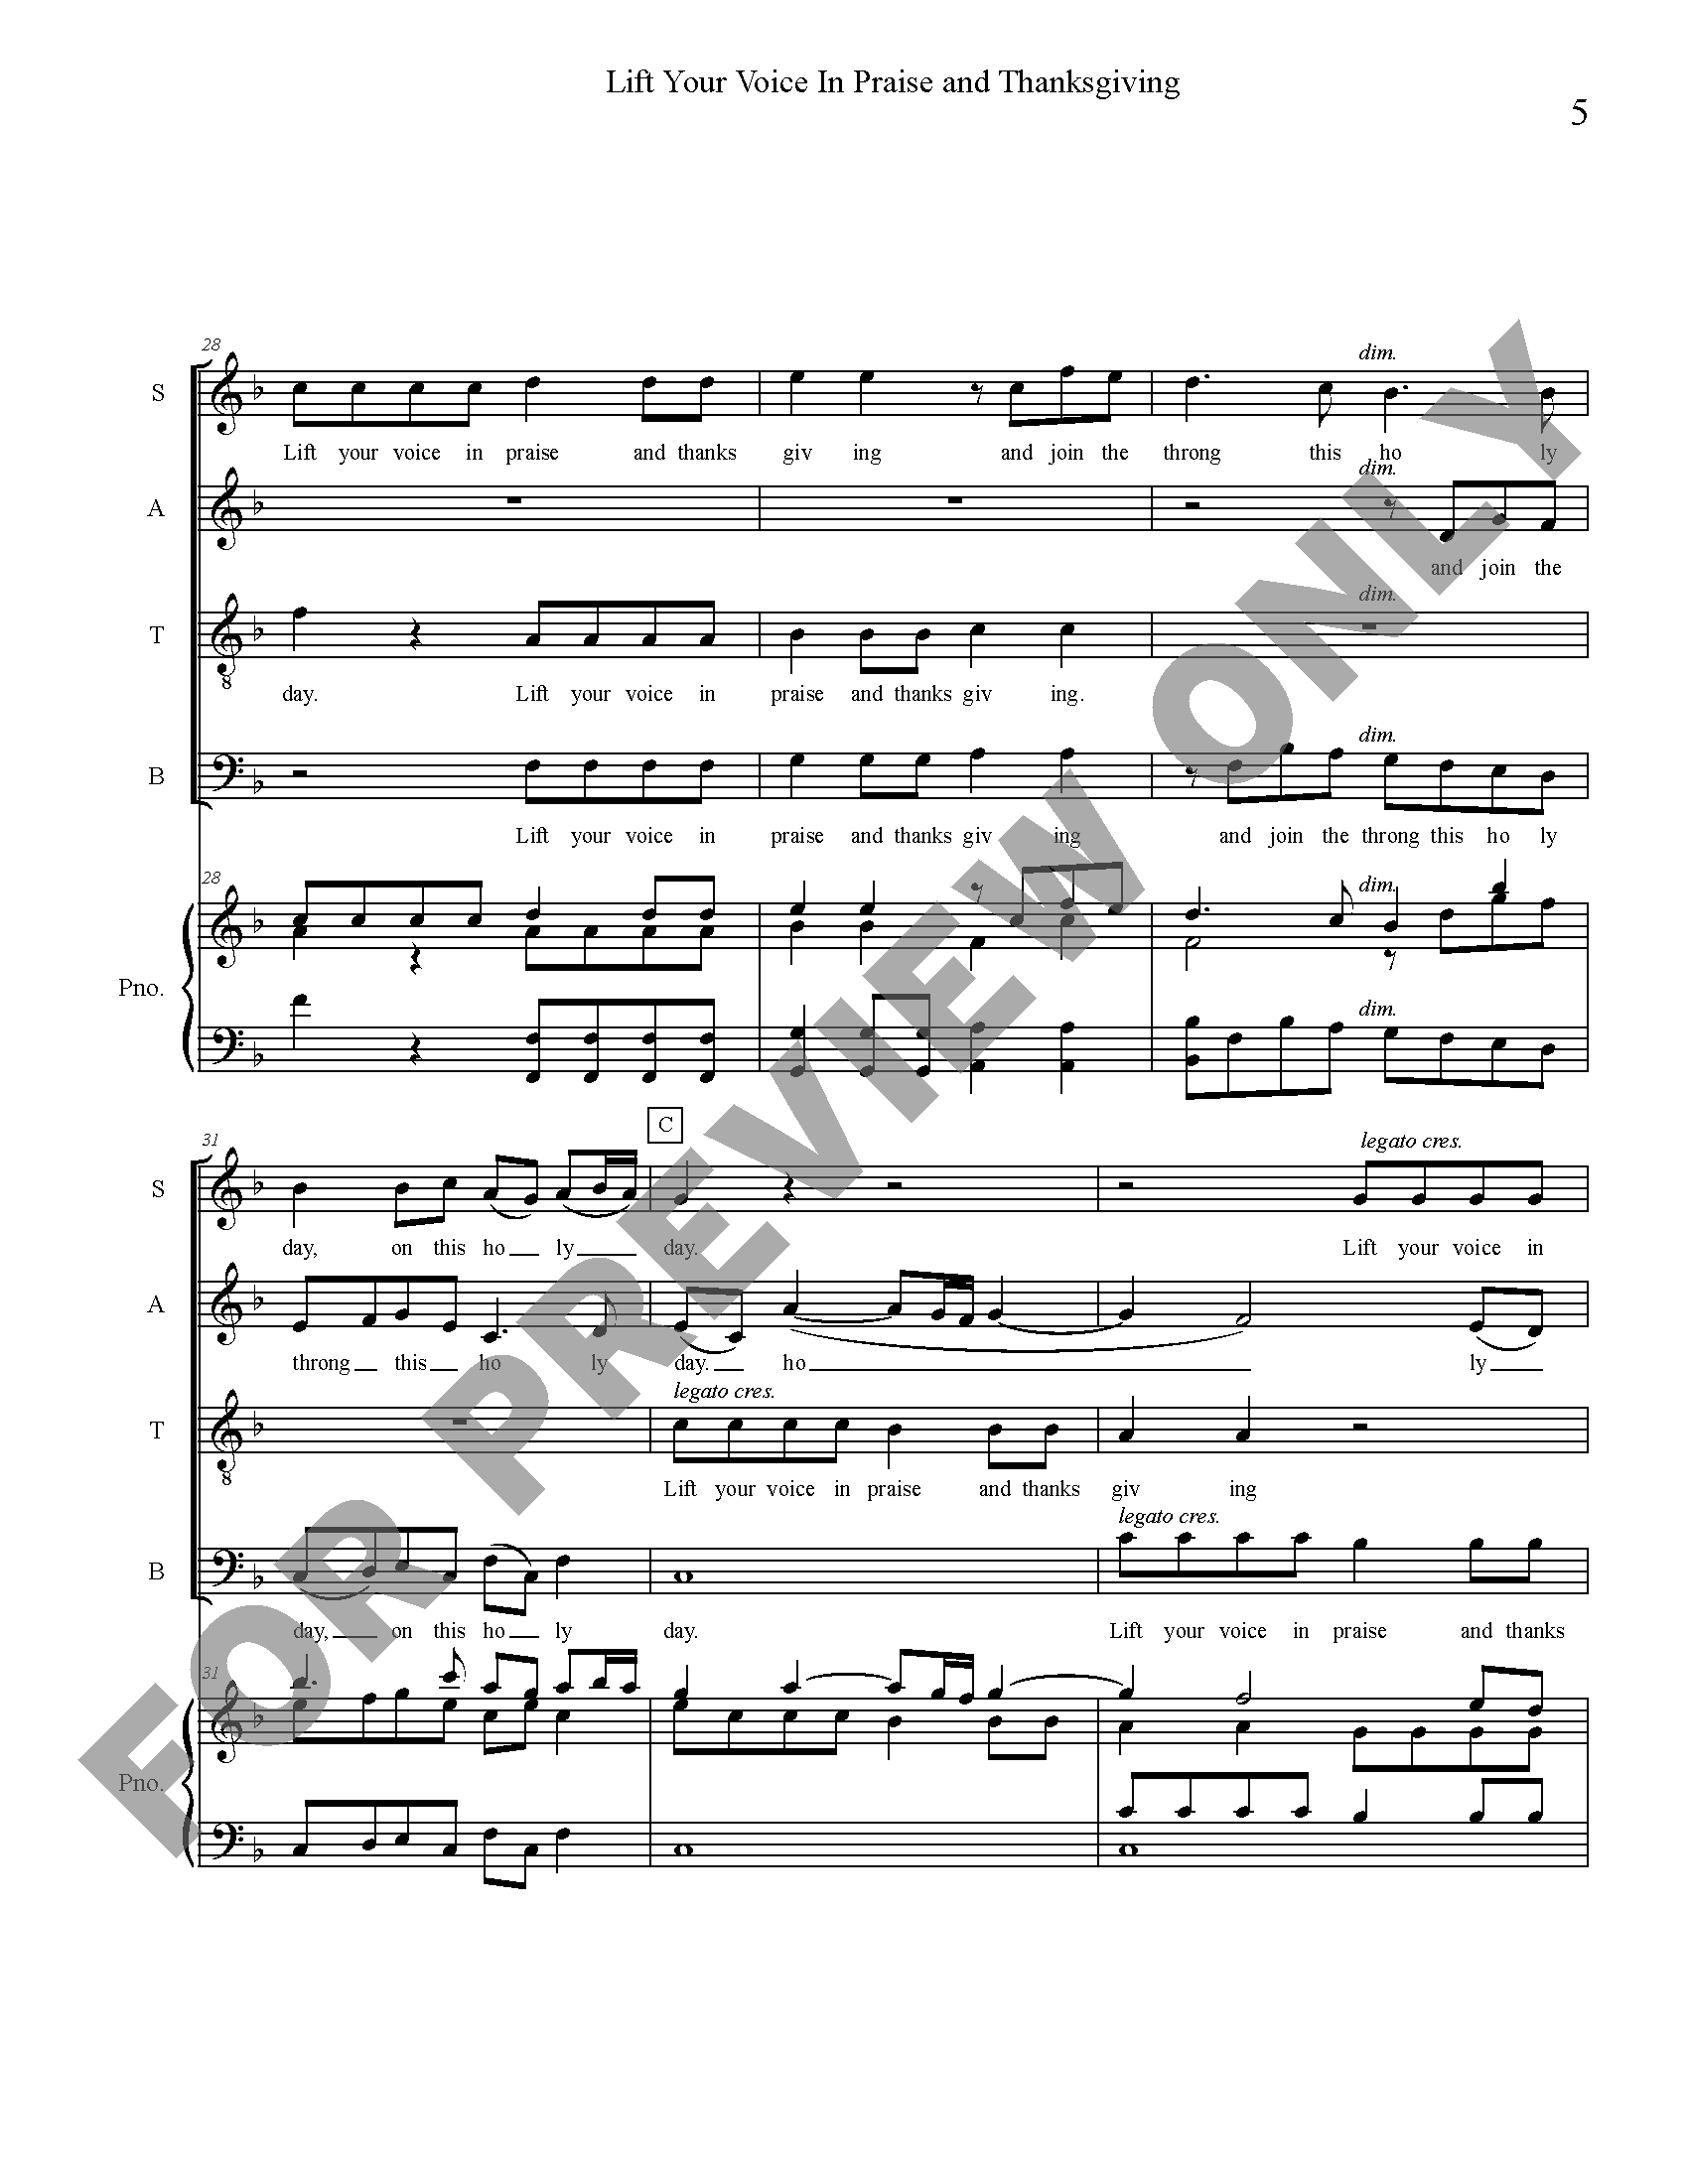 lift-your-voice_perusal_Page_5